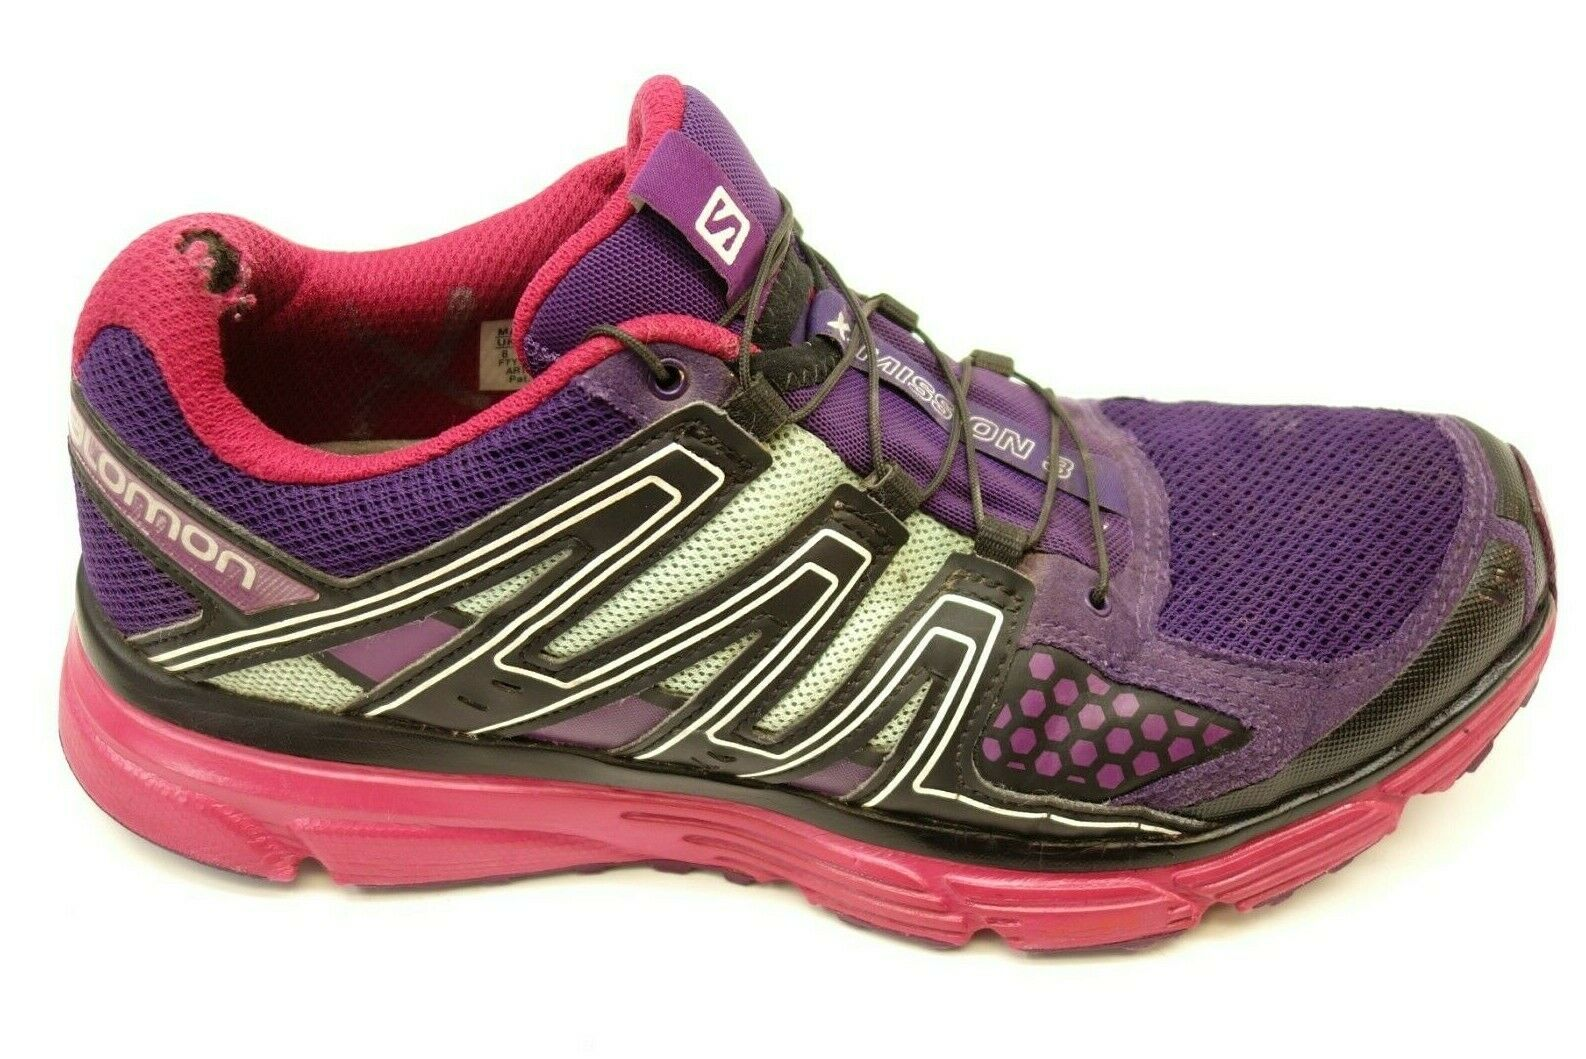 Salomon Womens Size 9.5 X-Mission 3 Contra-Grip Breathable Trail Running shoes